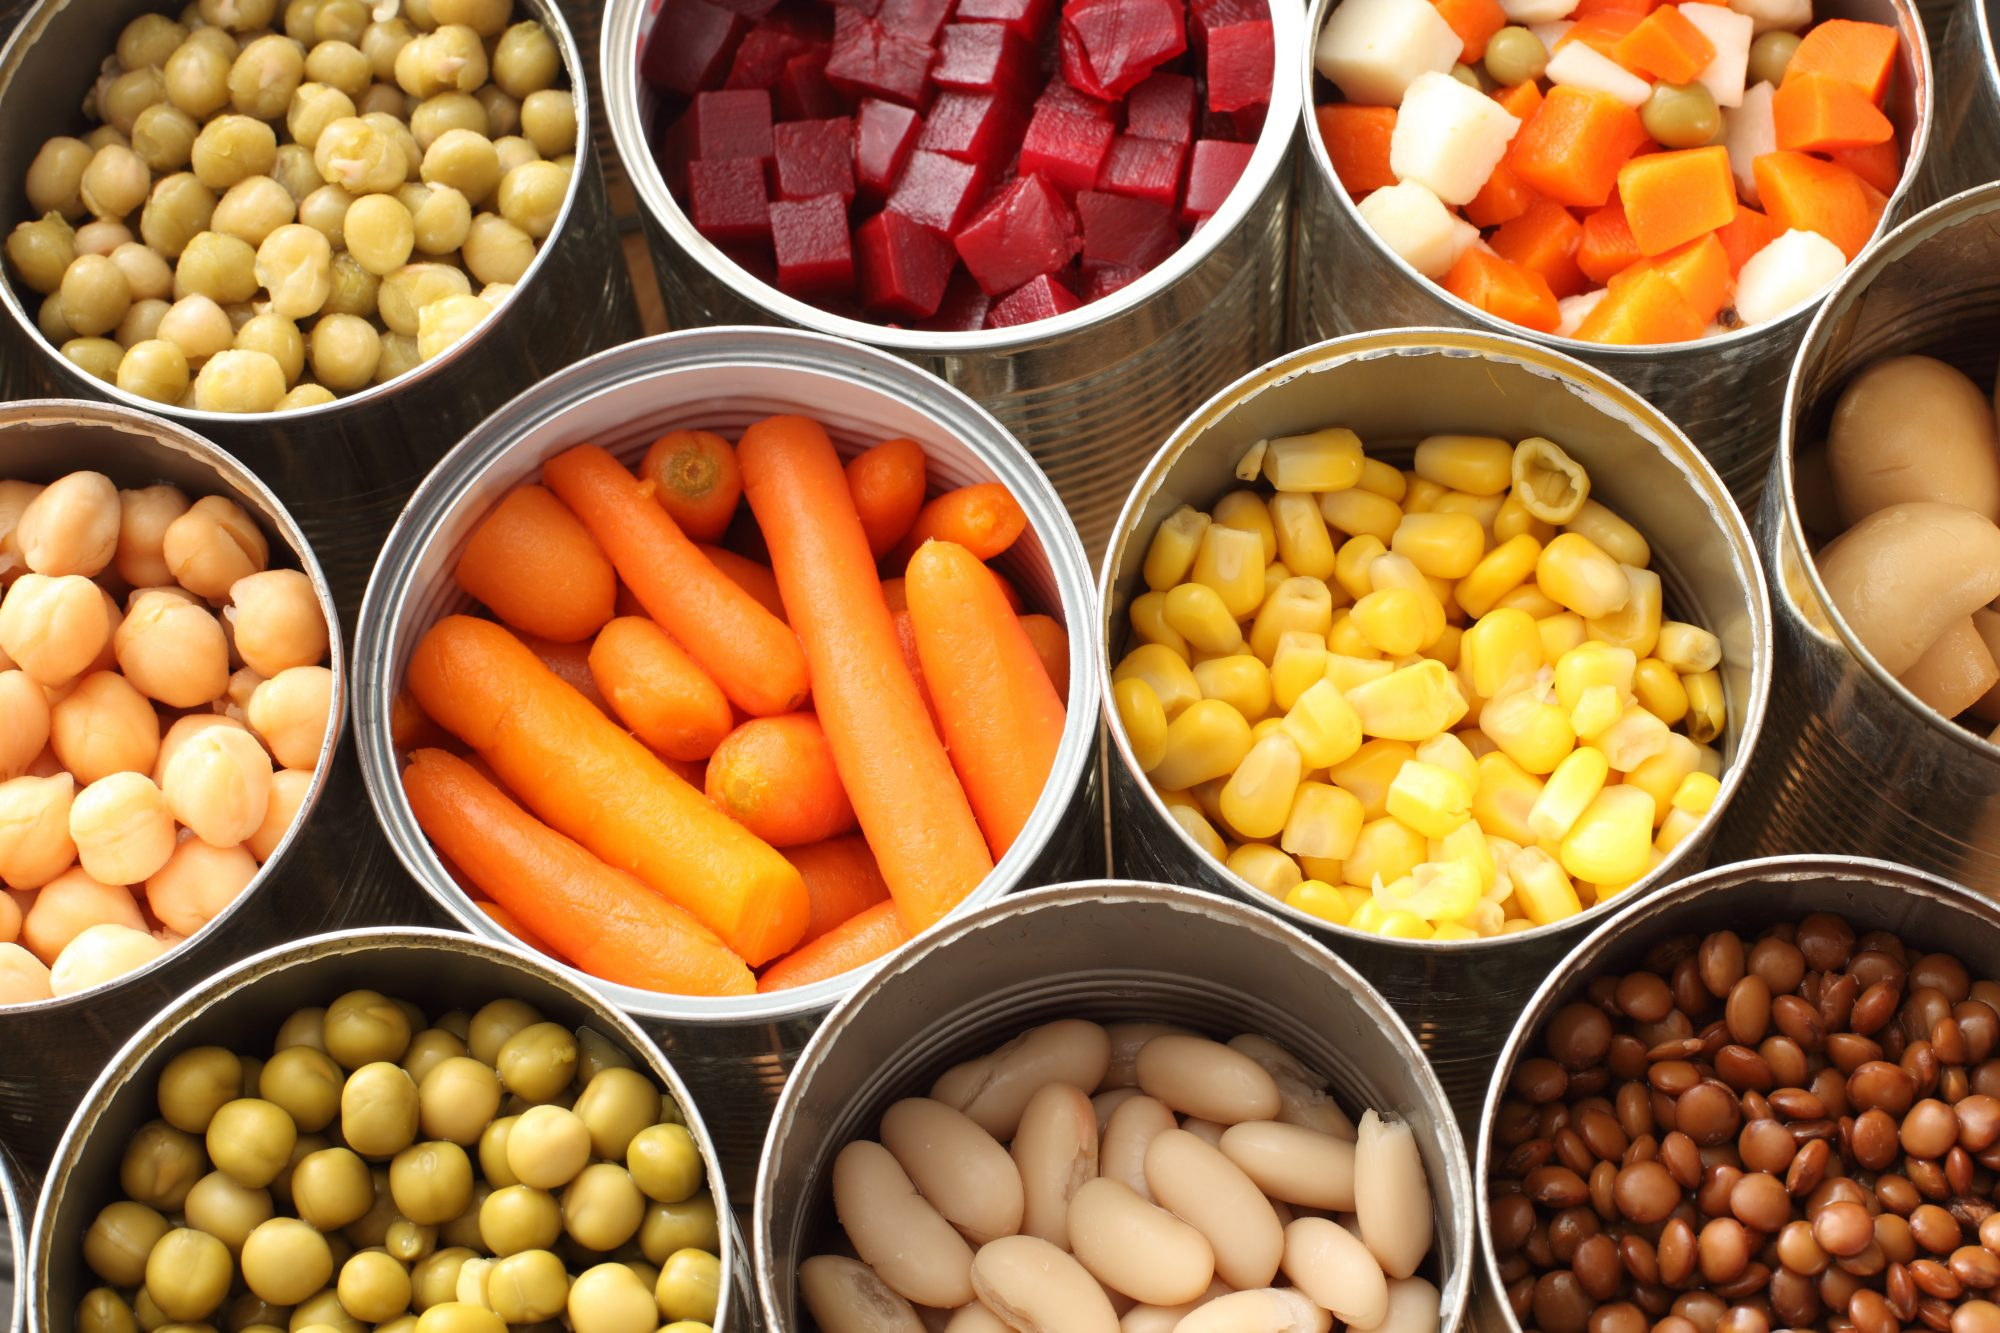 070710_Getty Canned Food Image